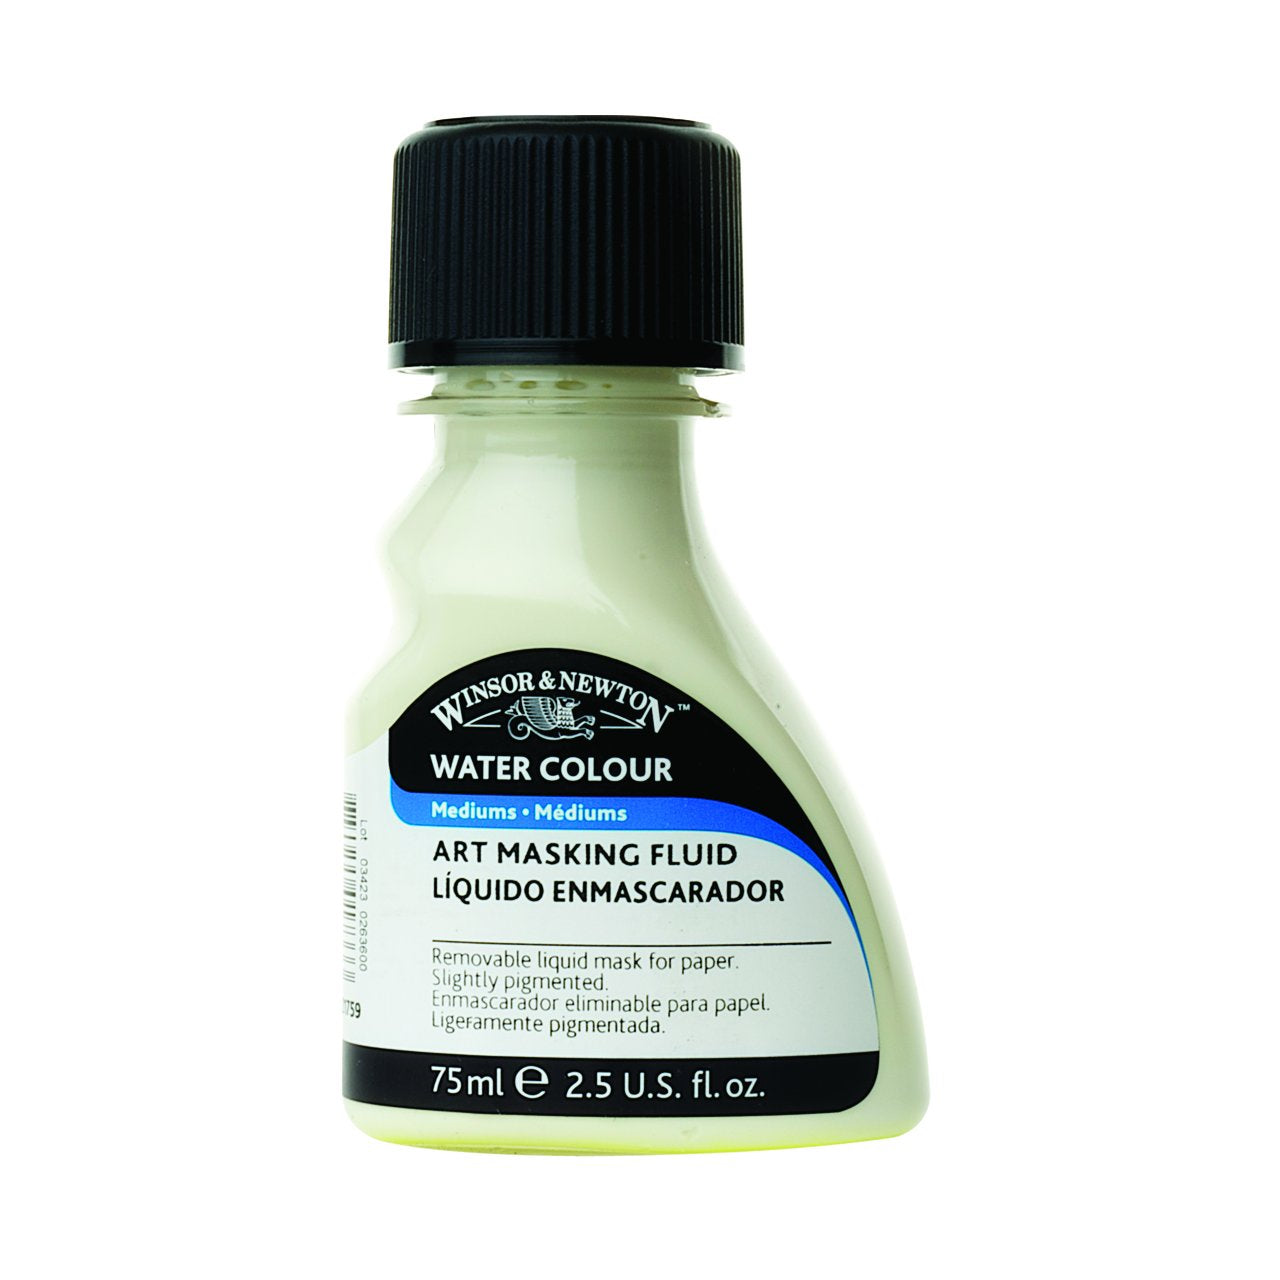 Winsor & Newton Art Masking Fluid, Yellow, 75ml